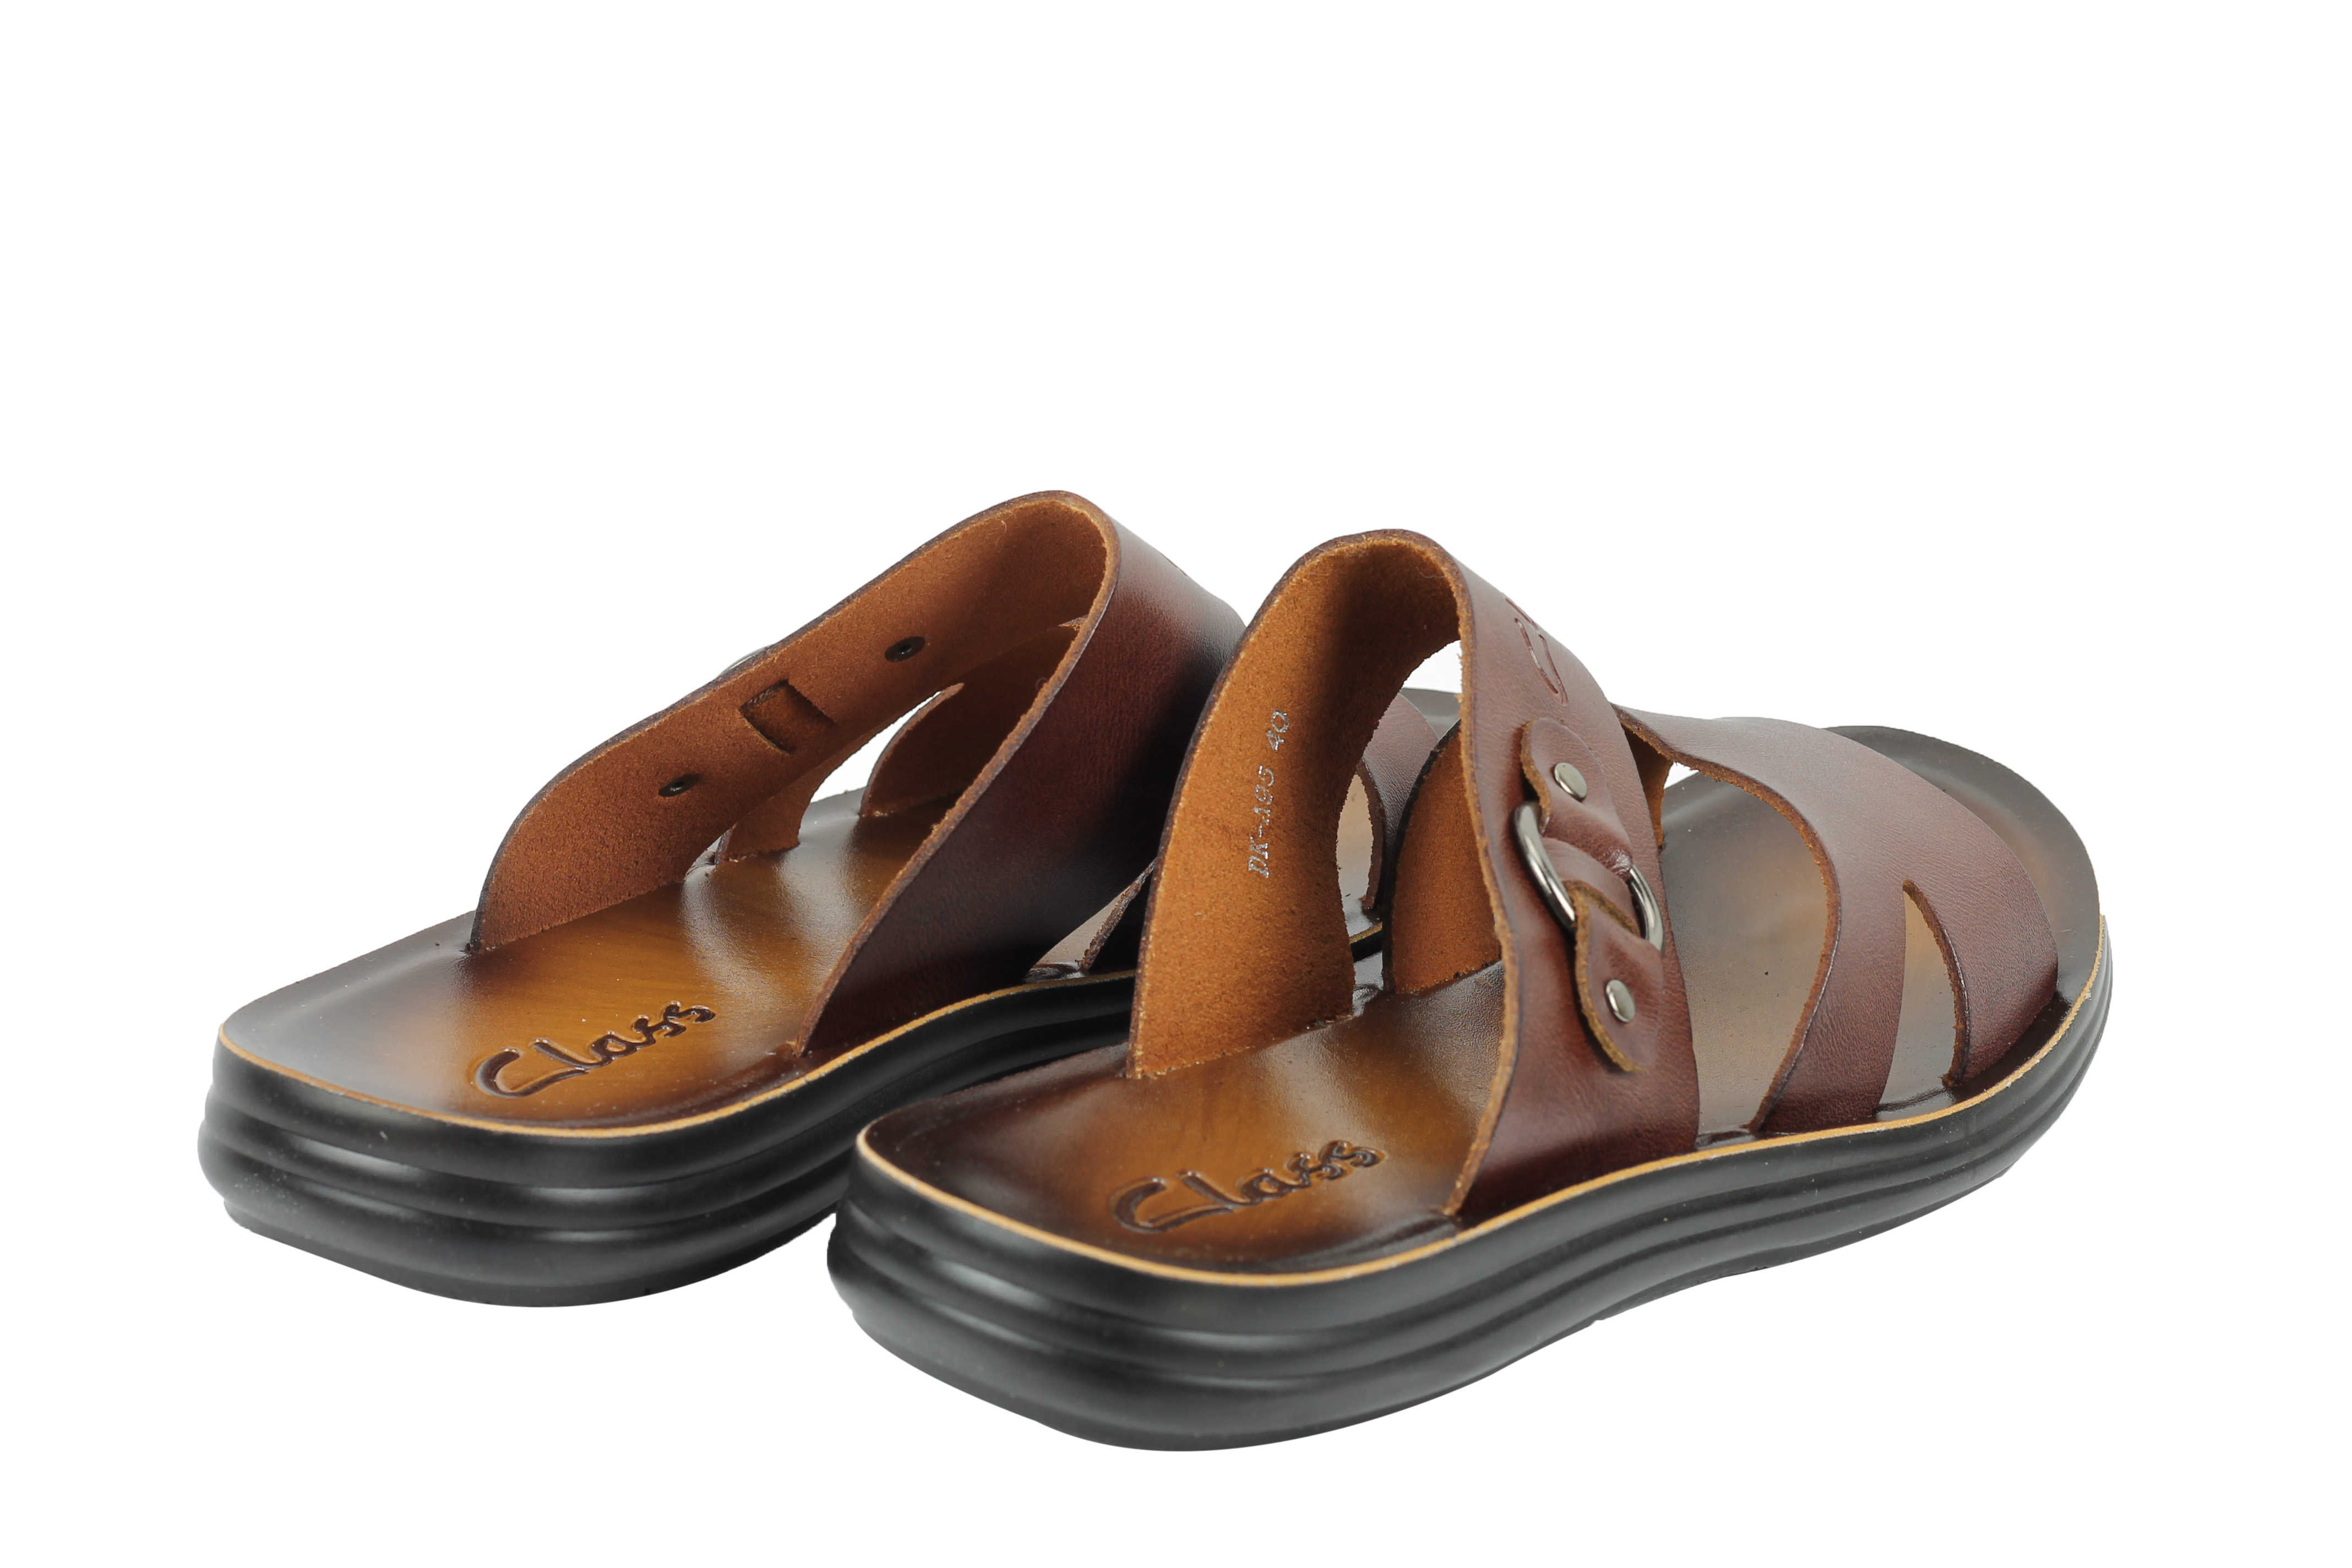 6f1b8c892d042d New Mens Real Polished Leather Sandals Beach Walking Slippers Slider ...